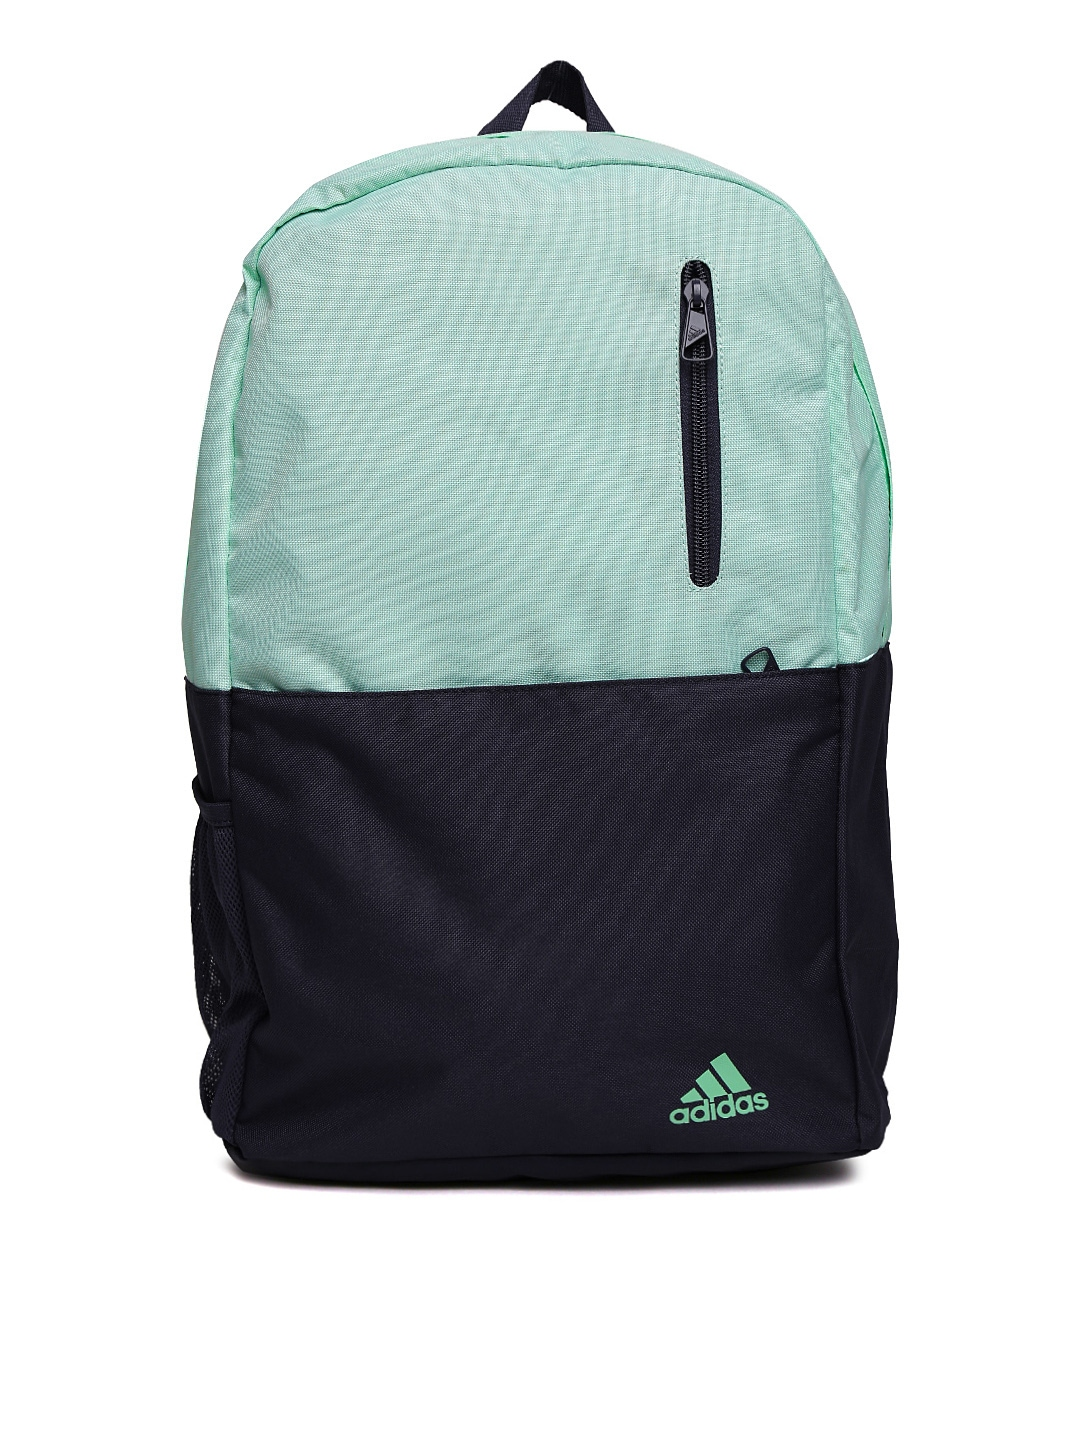 80361040da Buy rucksack adidas   OFF67% Discounted